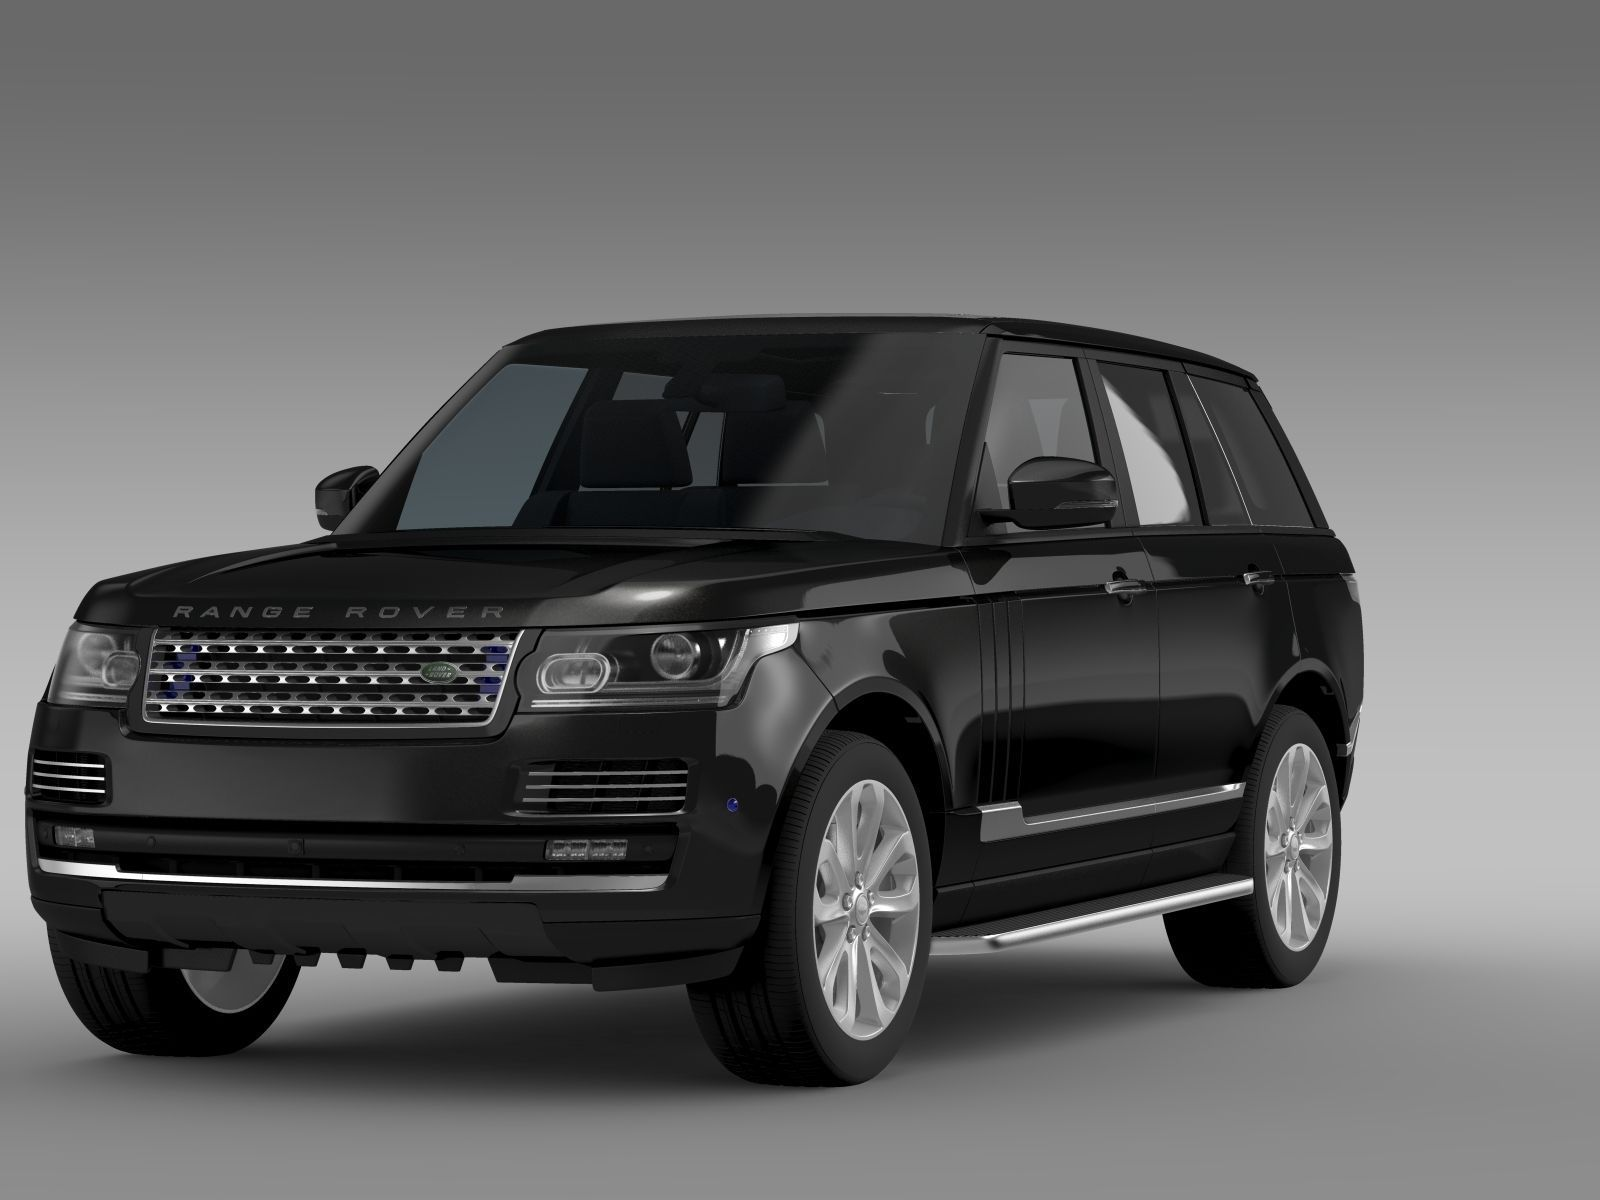 range rover sentinel l405 2016 3d model max obj 3ds fbx c4d lwo lw lws. Black Bedroom Furniture Sets. Home Design Ideas